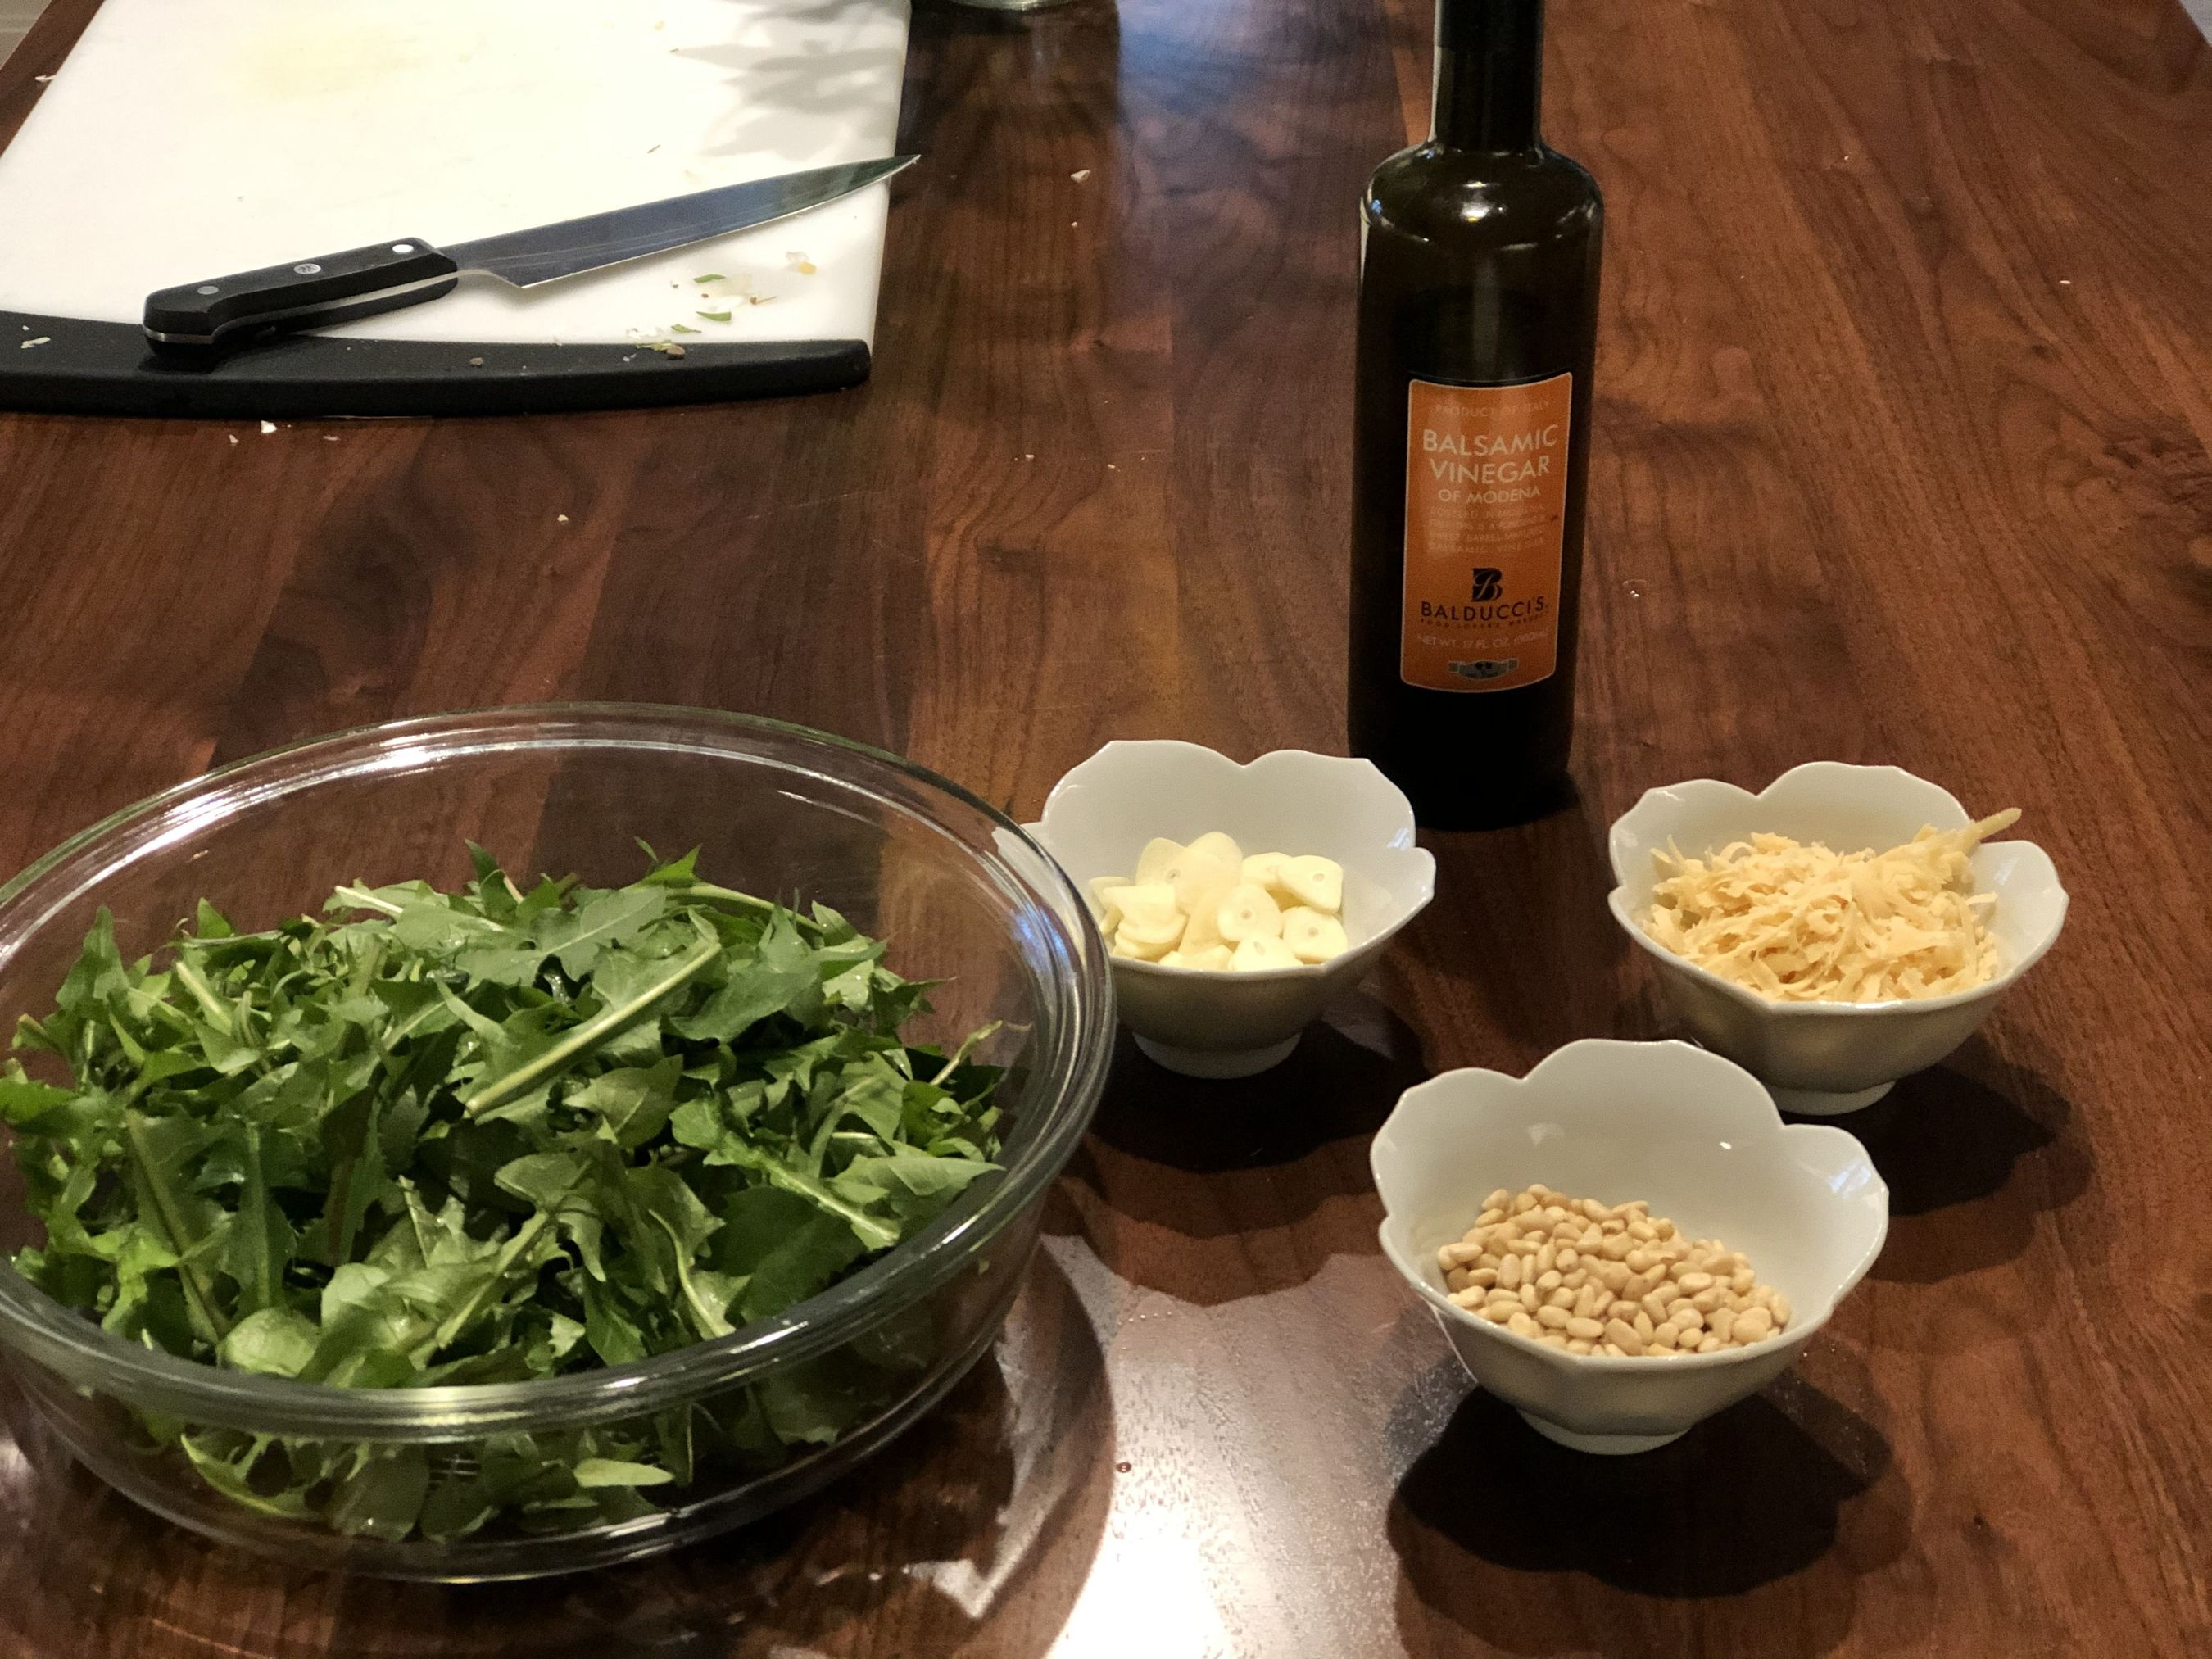 arugula, garlic, pine nuts, and olive oil on a table